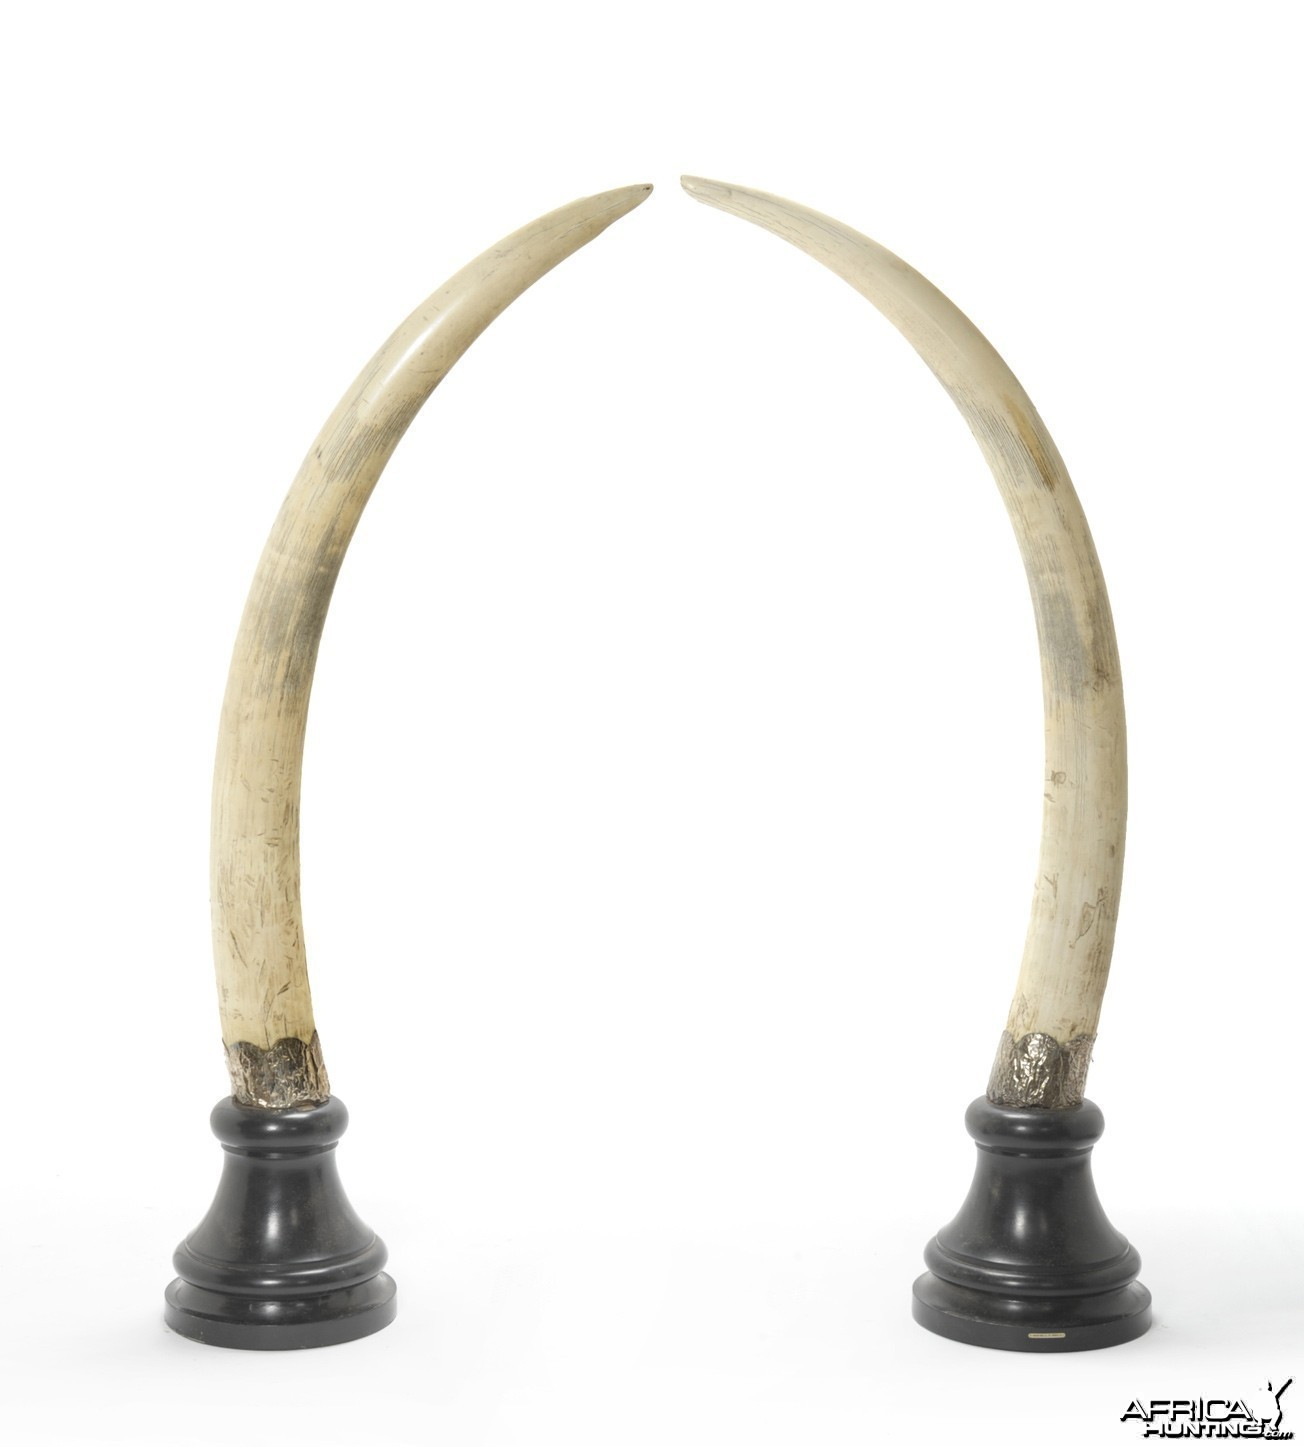 Pair of Elephant Tusks